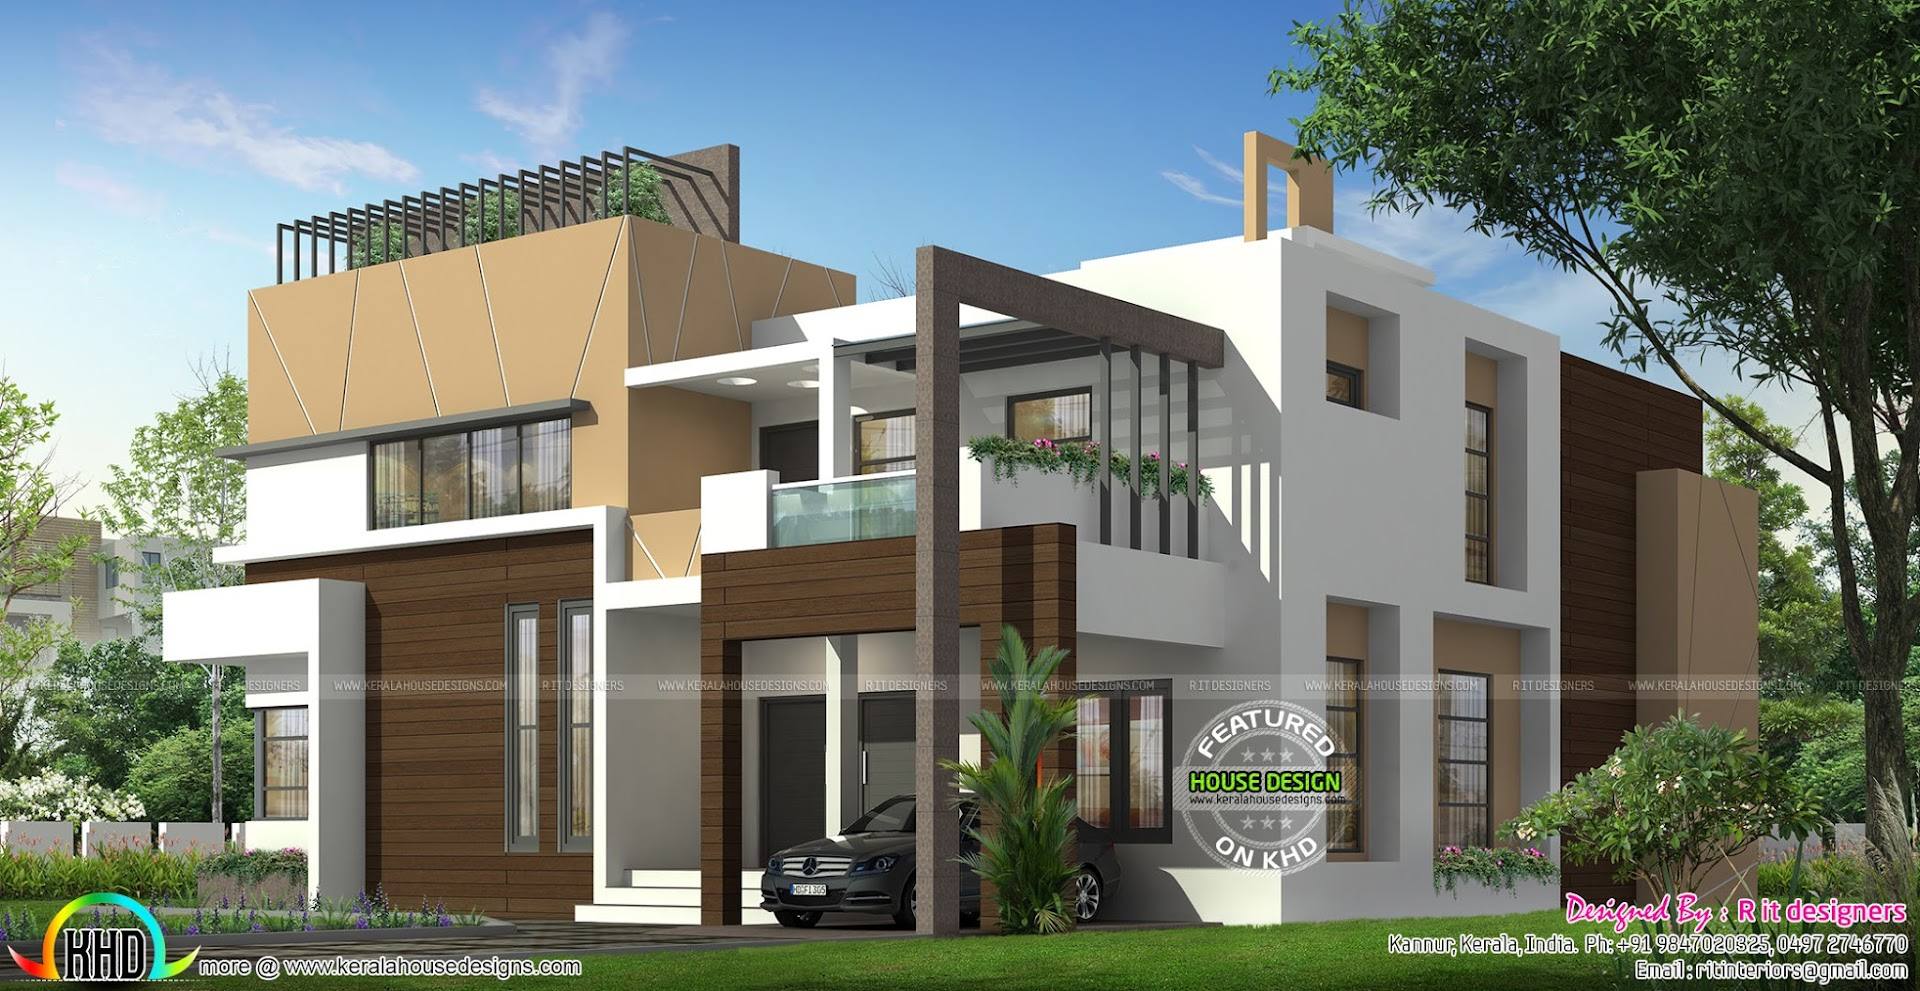 Luxurious 5 bedroom ultra modern home kerala home design Ultra modern house